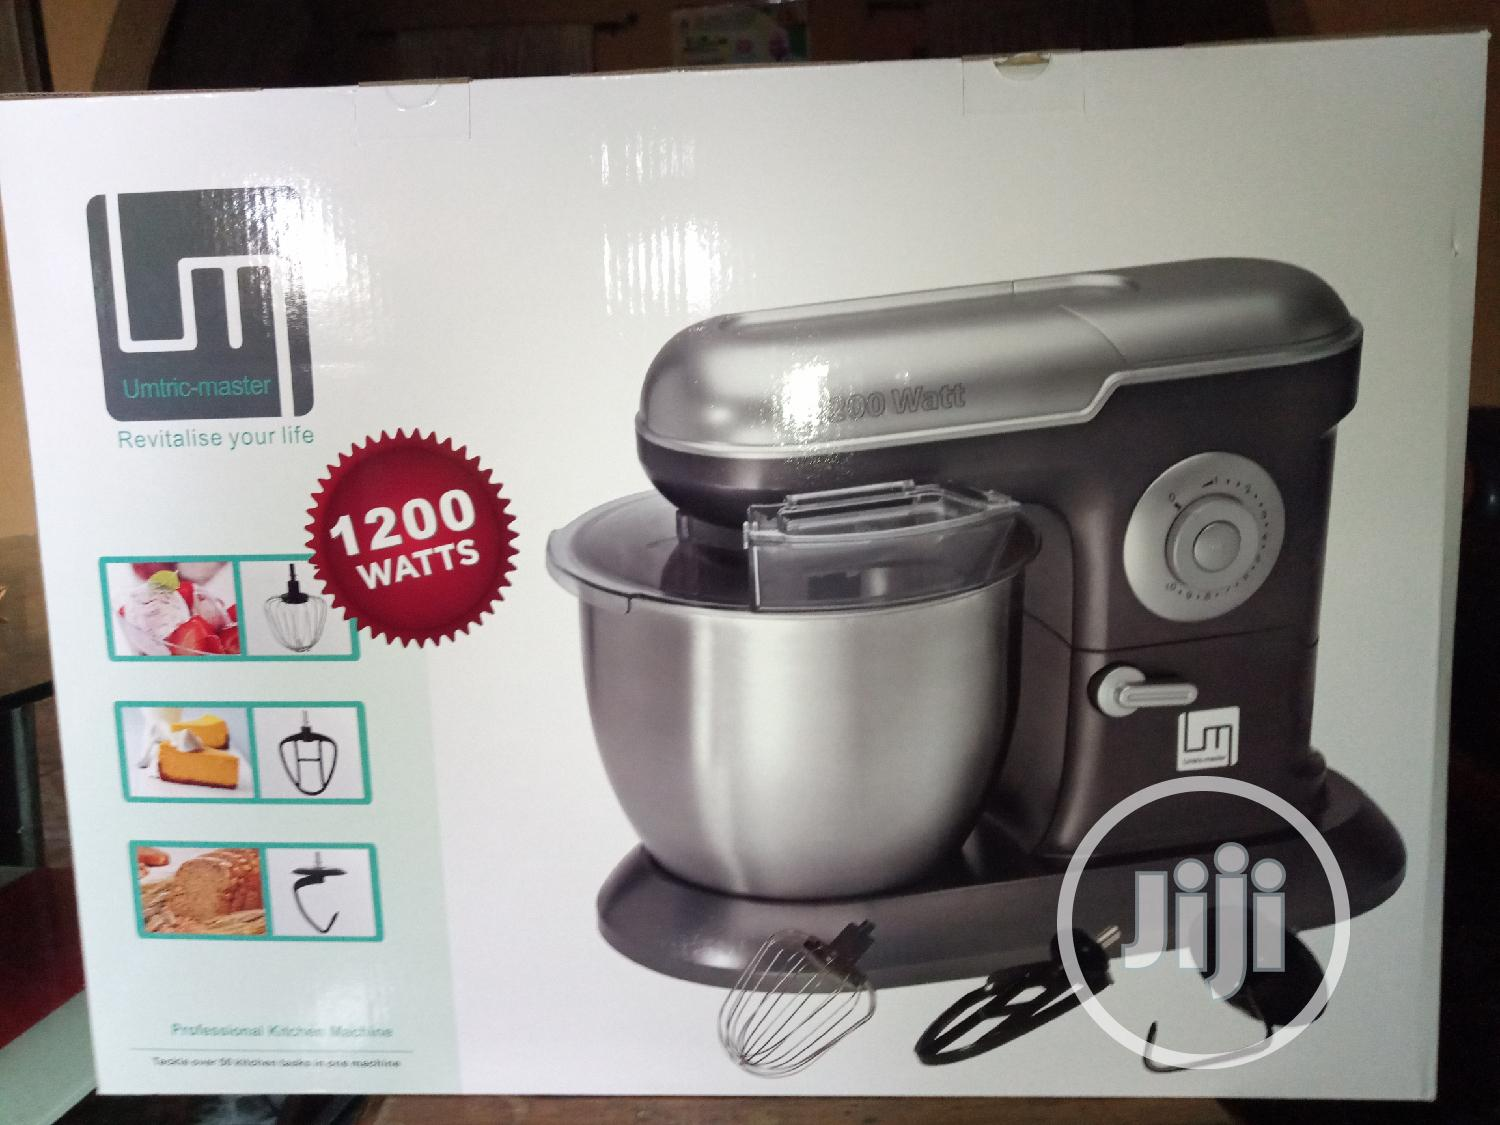 Umtric Master 7litres Stand Mixer,1200watts,10speed, Pulse.